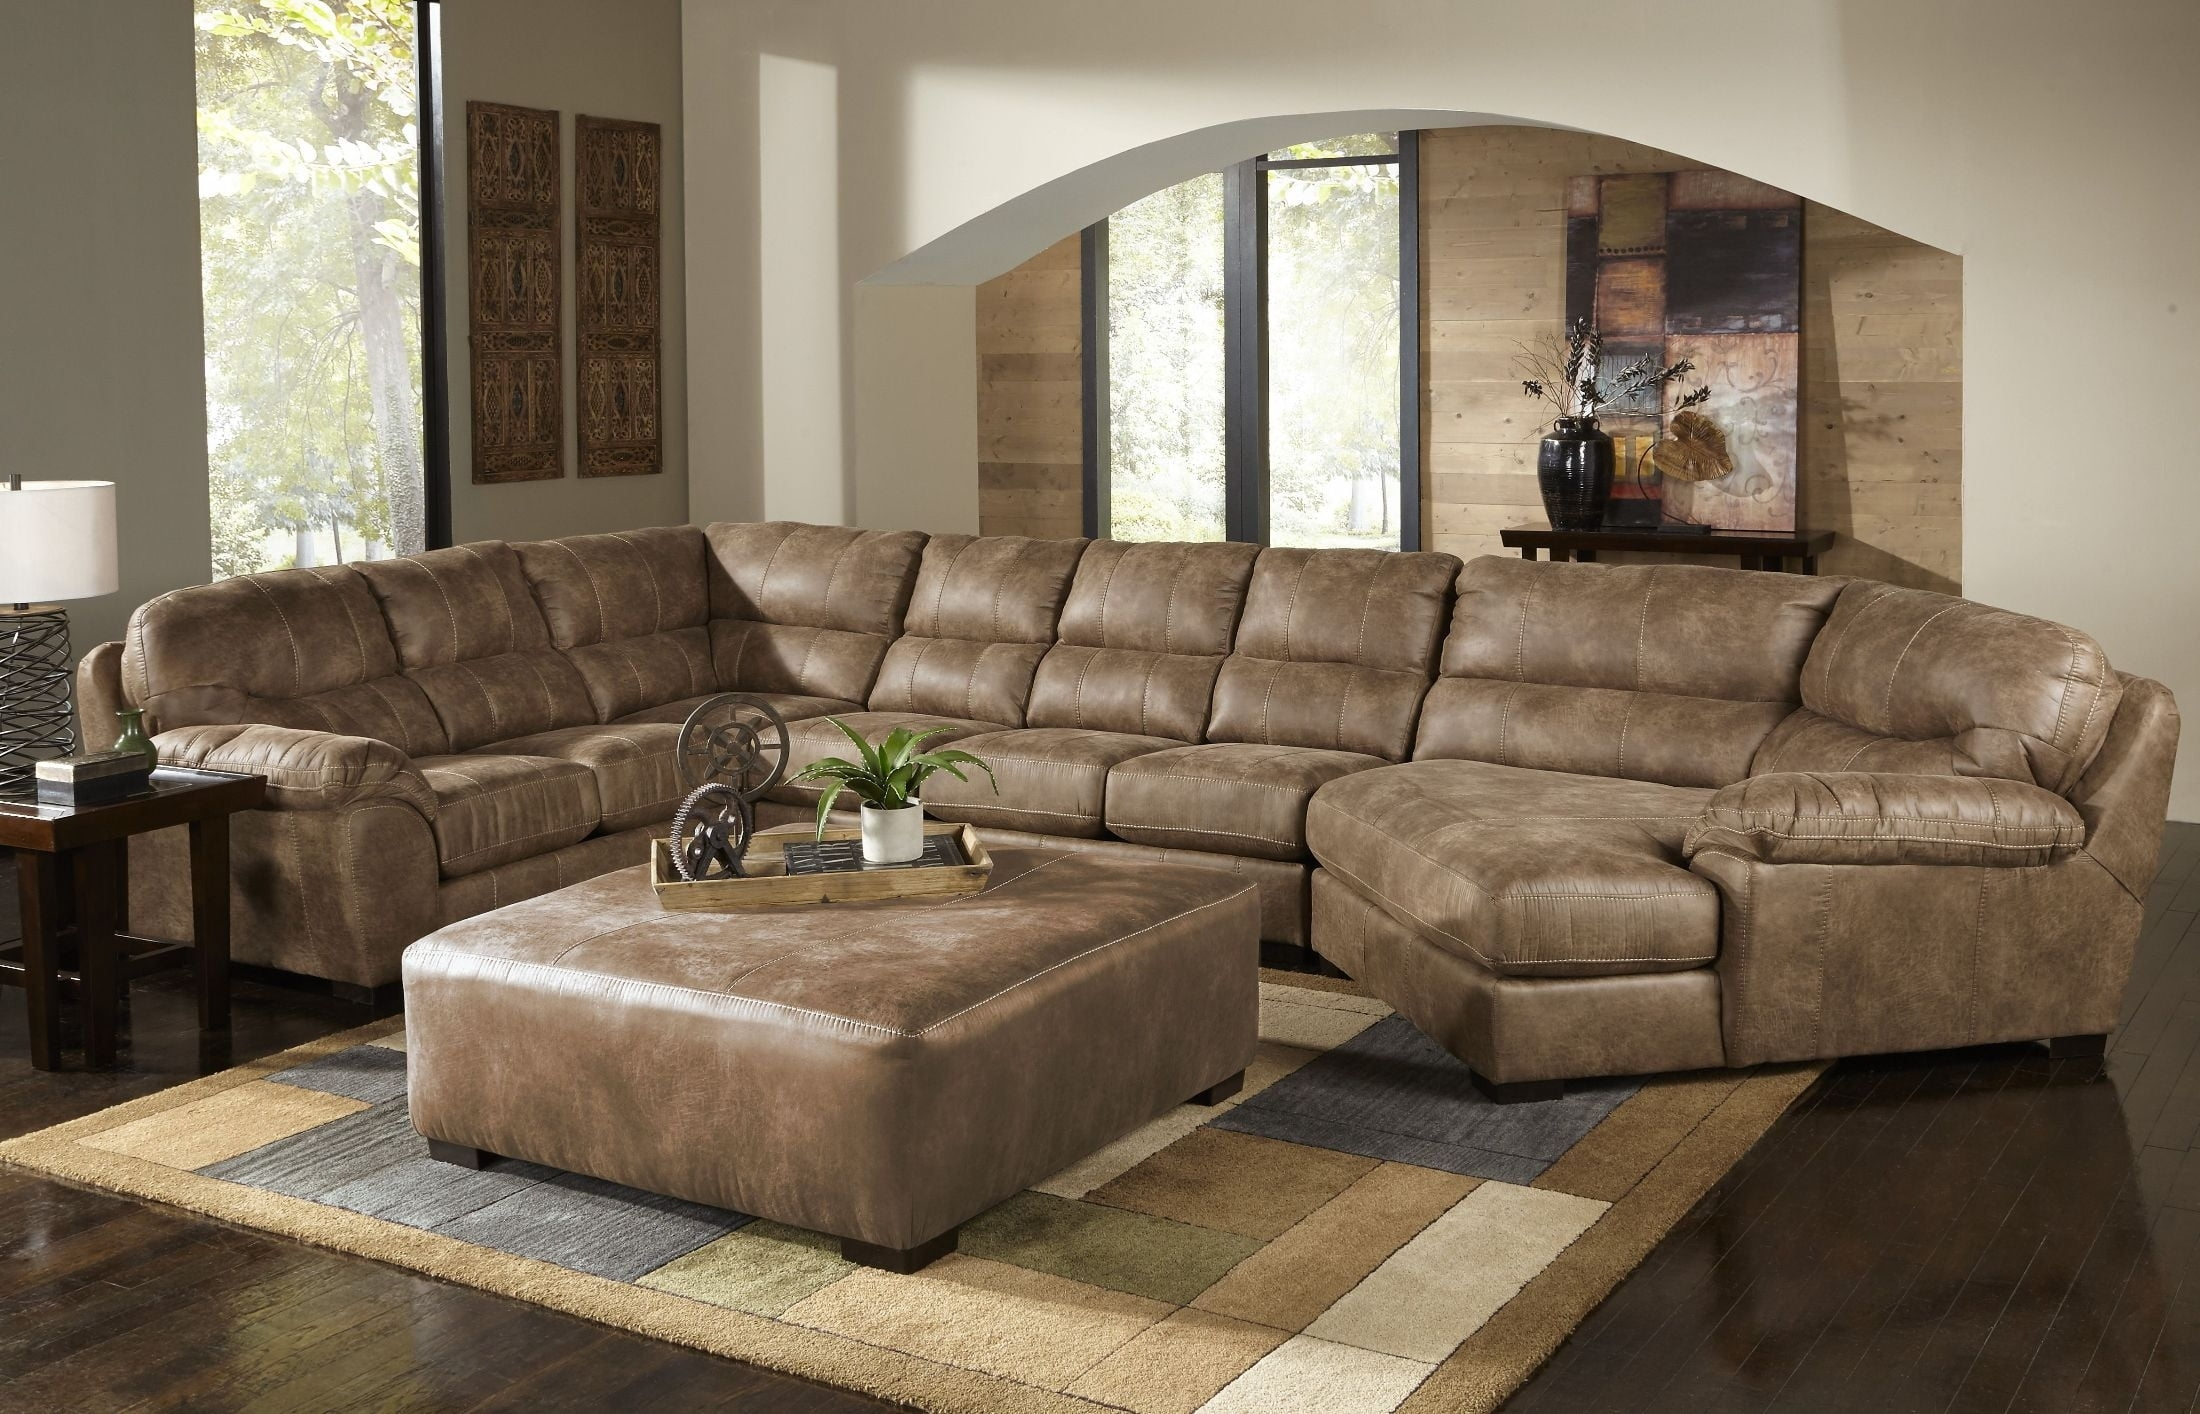 Grant Silt Laf Chaise Sectional, 4453-75-122749302749, Jackson pertaining to Avery 2 Piece Sectionals With Raf Armless Chaise (Image 15 of 30)